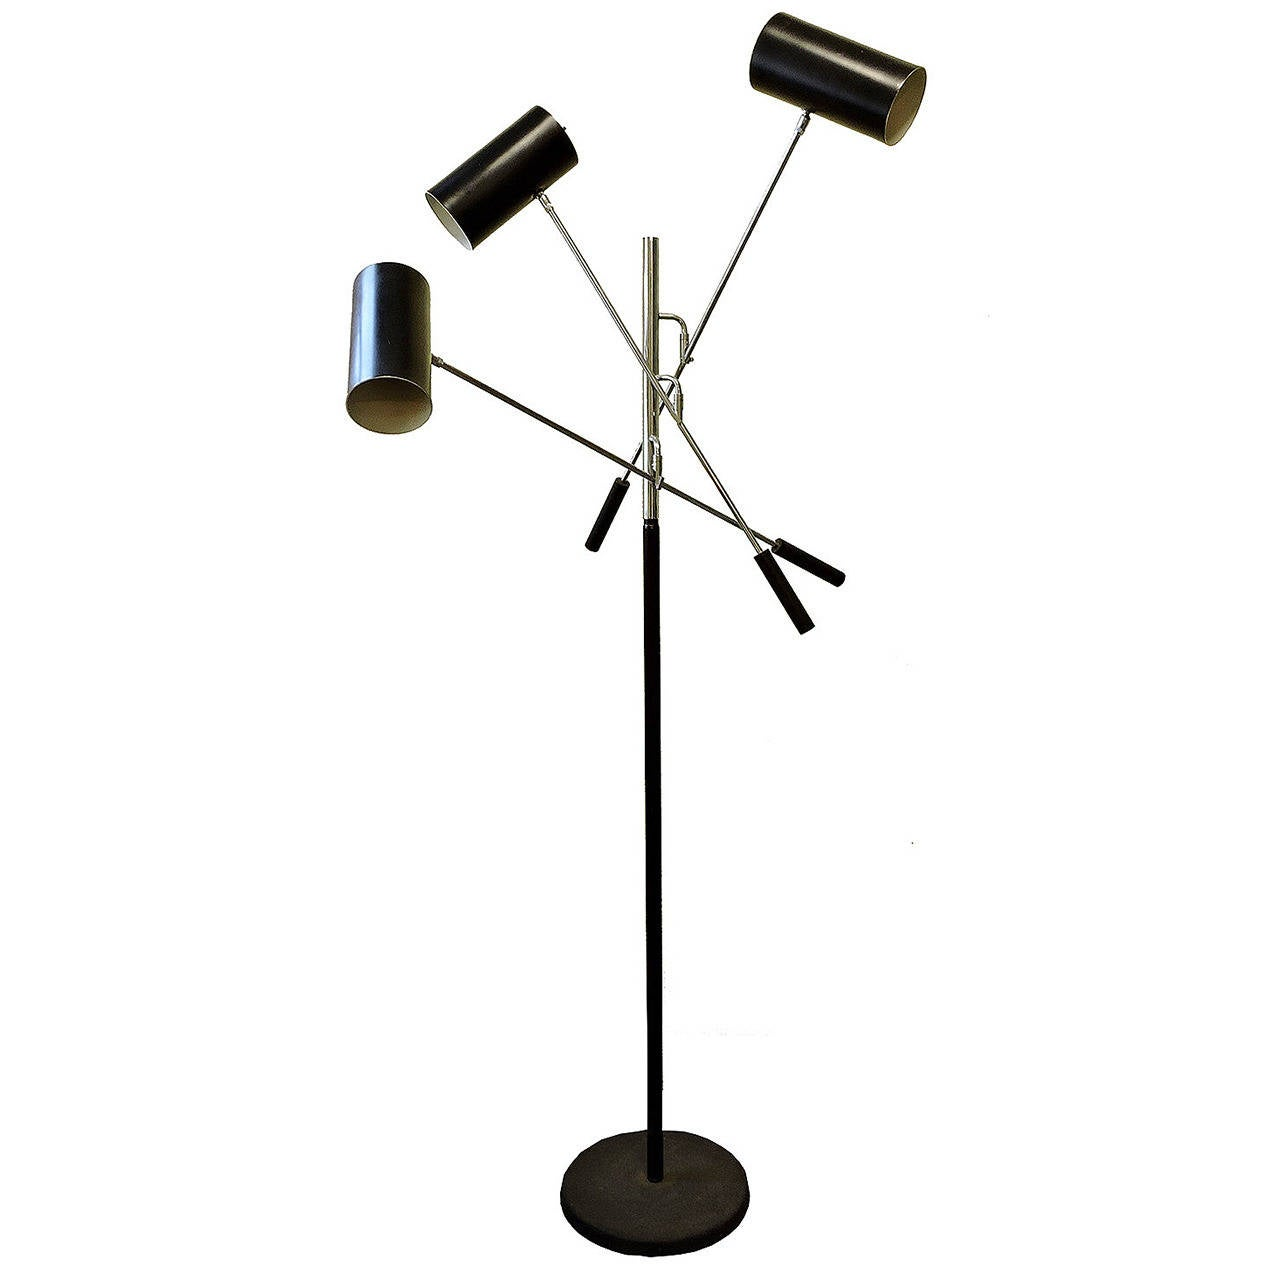 Italian Mid-Century Modern Chrome and Patinated Metal Adjustable Floor Lamp